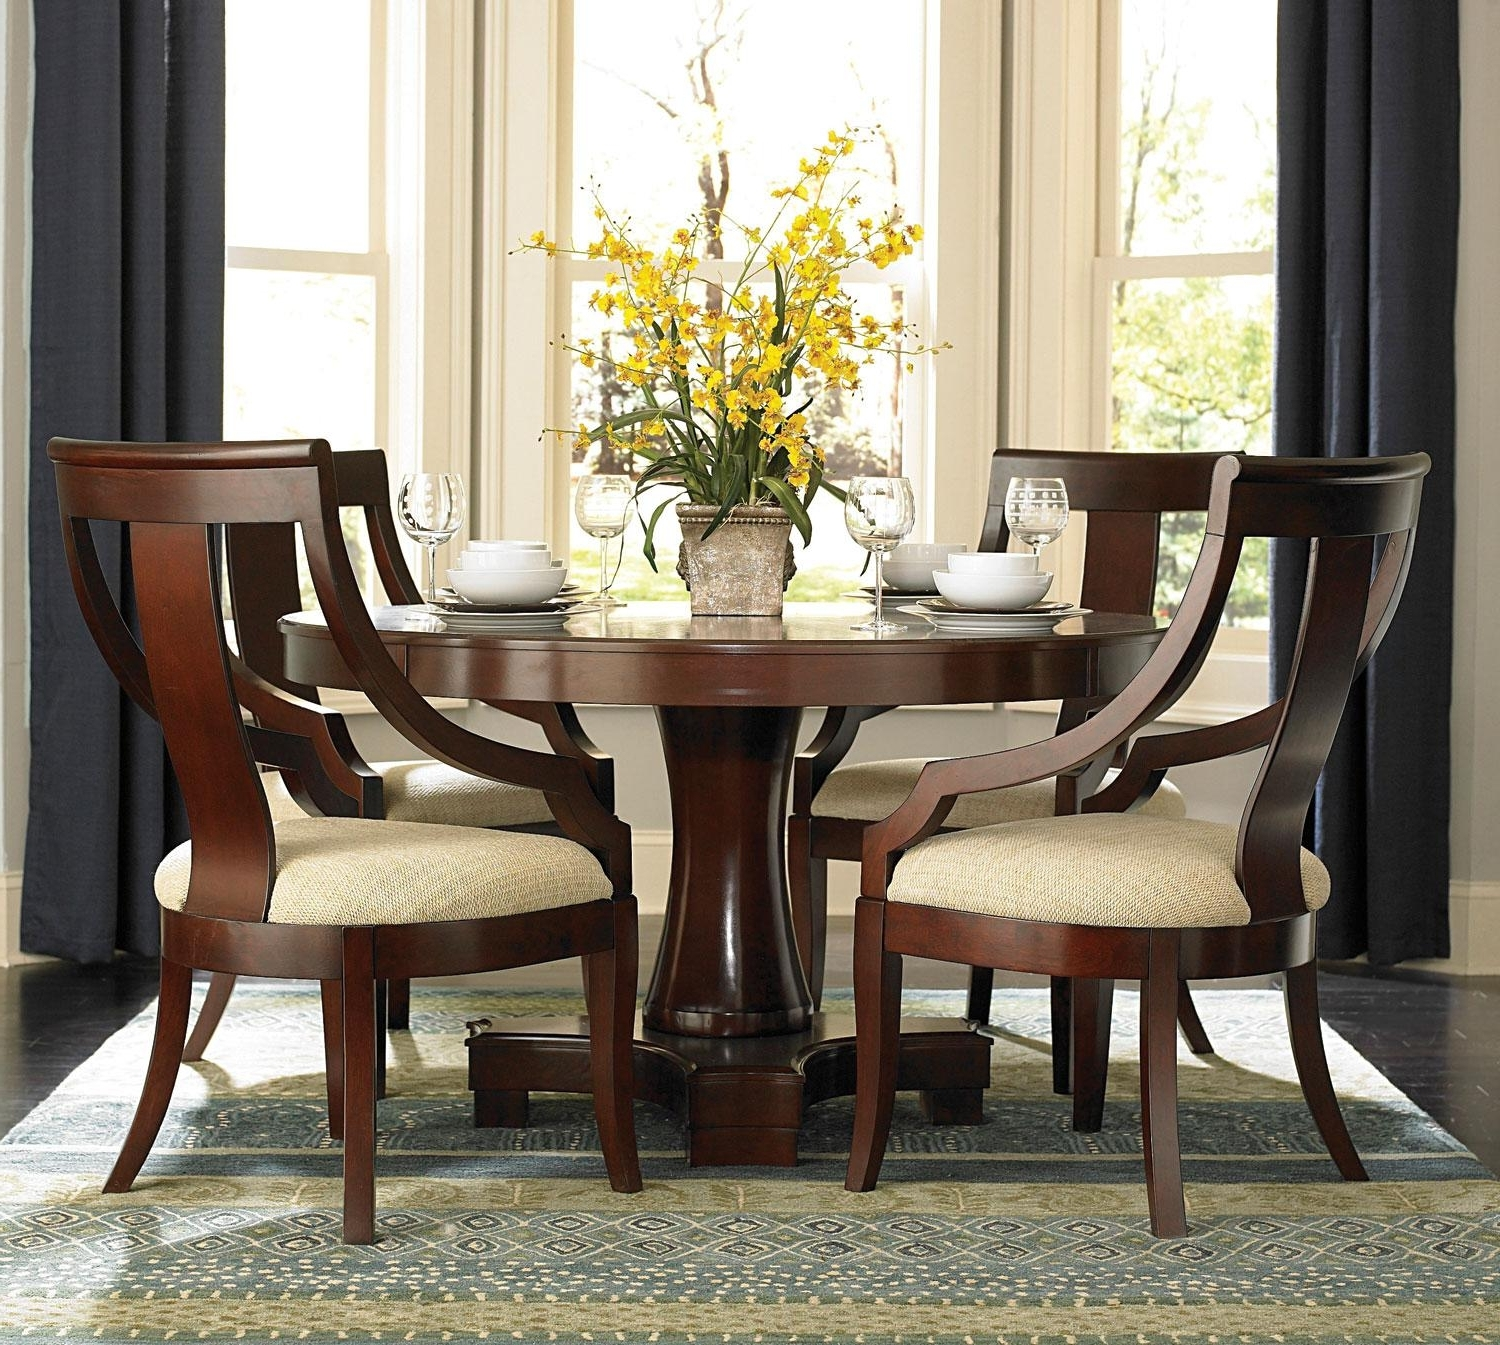 2017 Dining Room Large Kitchen Table Best Dining Tables Fancy Dining For Large Circular Dining Tables (View 14 of 25)